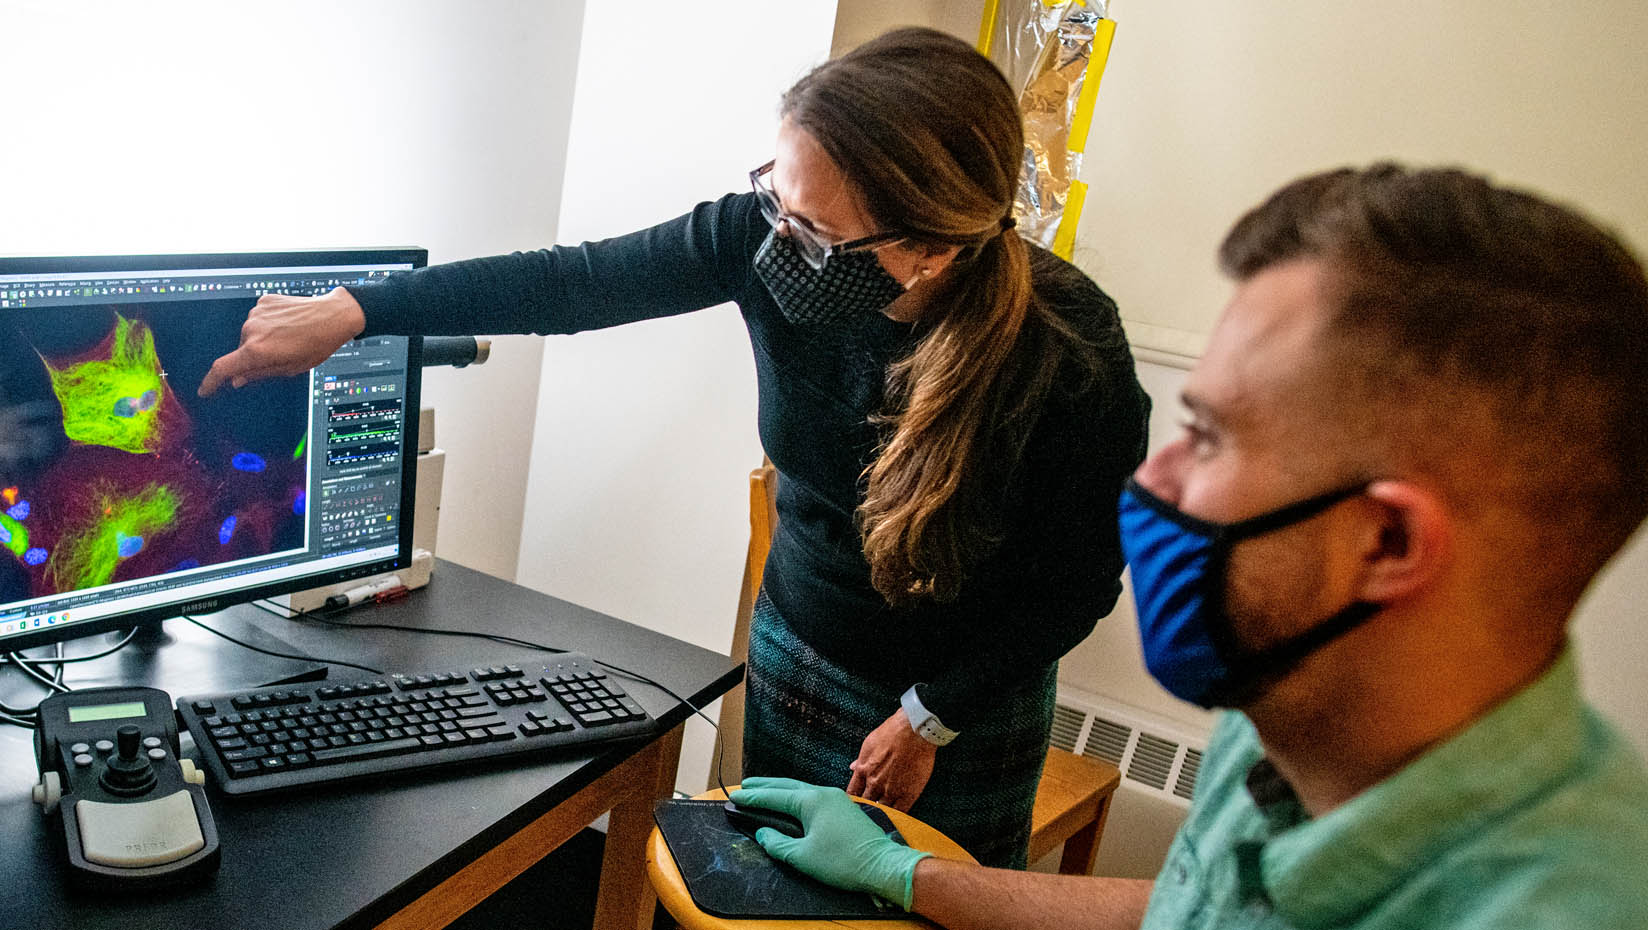 Melissa Maginnis points to a computer screen while a masked man looks on